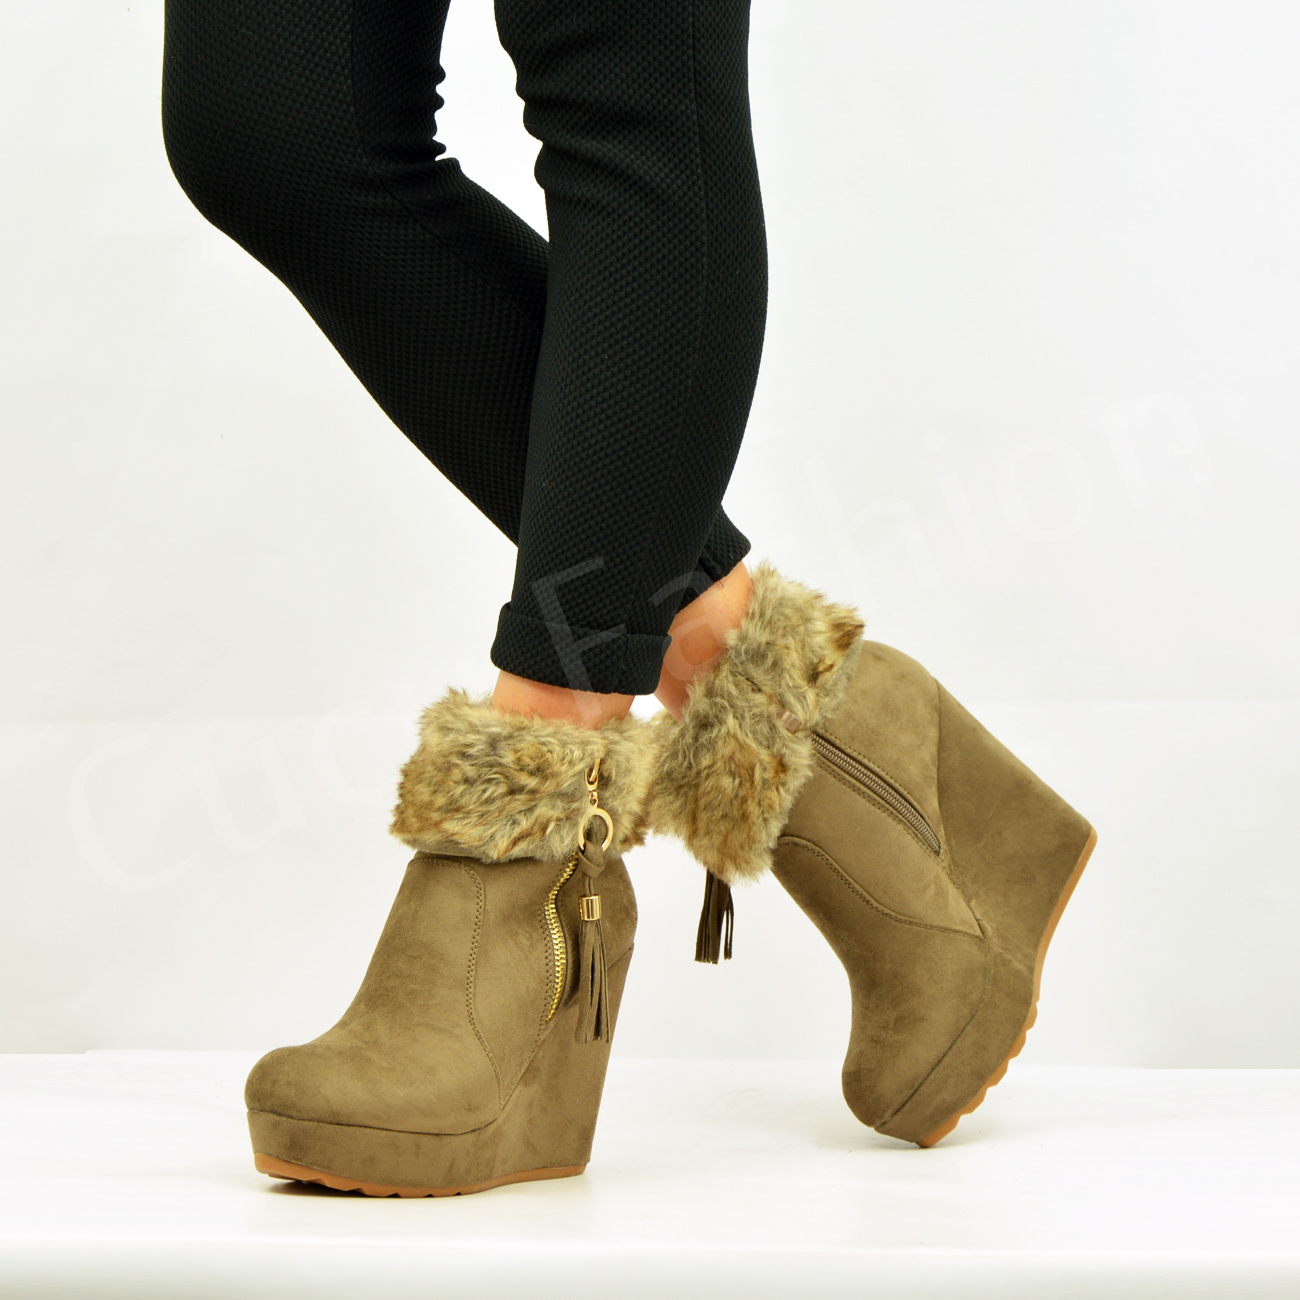 New Womens Fur Lined Ankle Boots Ladies Wedge Platforms Winter ...